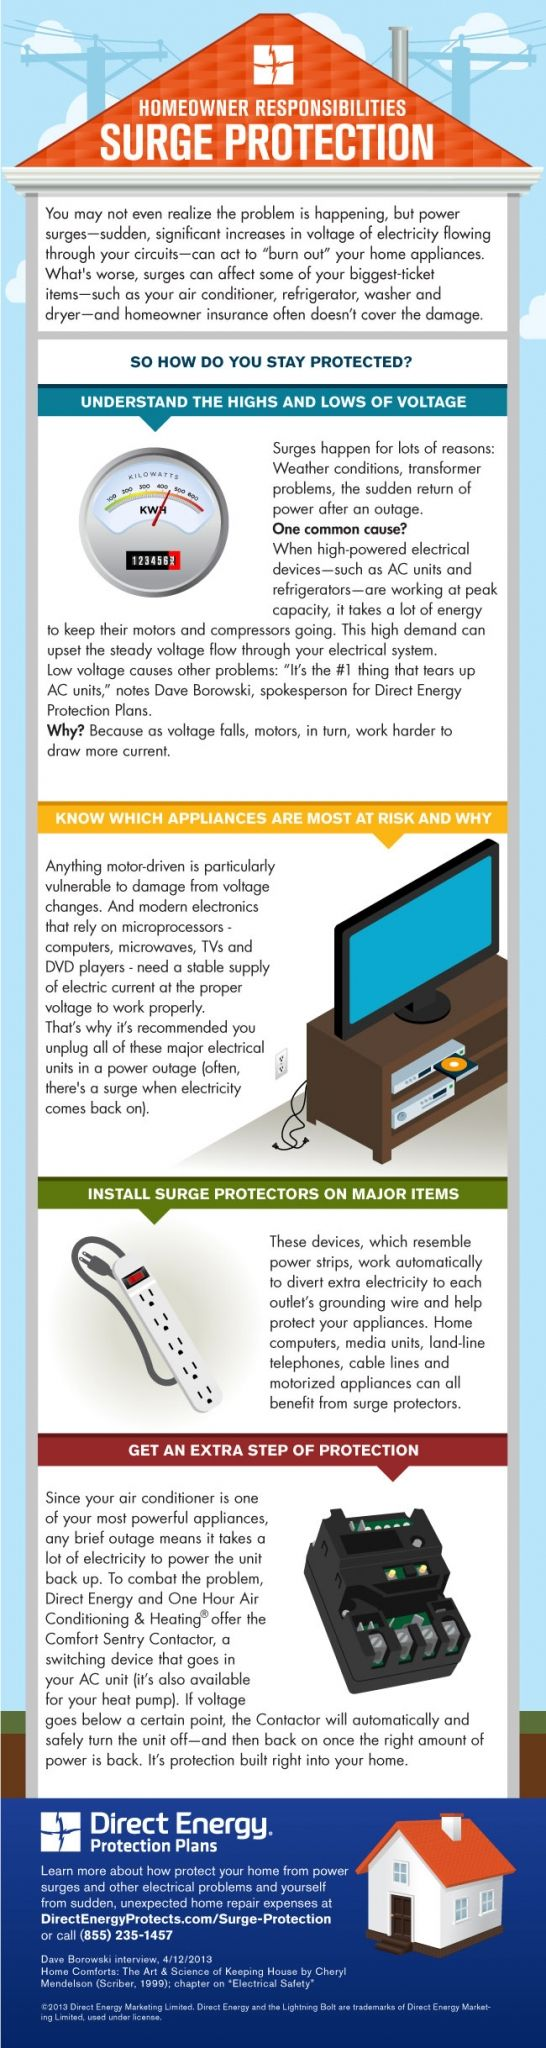 How to protect your home from power surges with surge protection plans from Direct Energy Protection Plans.